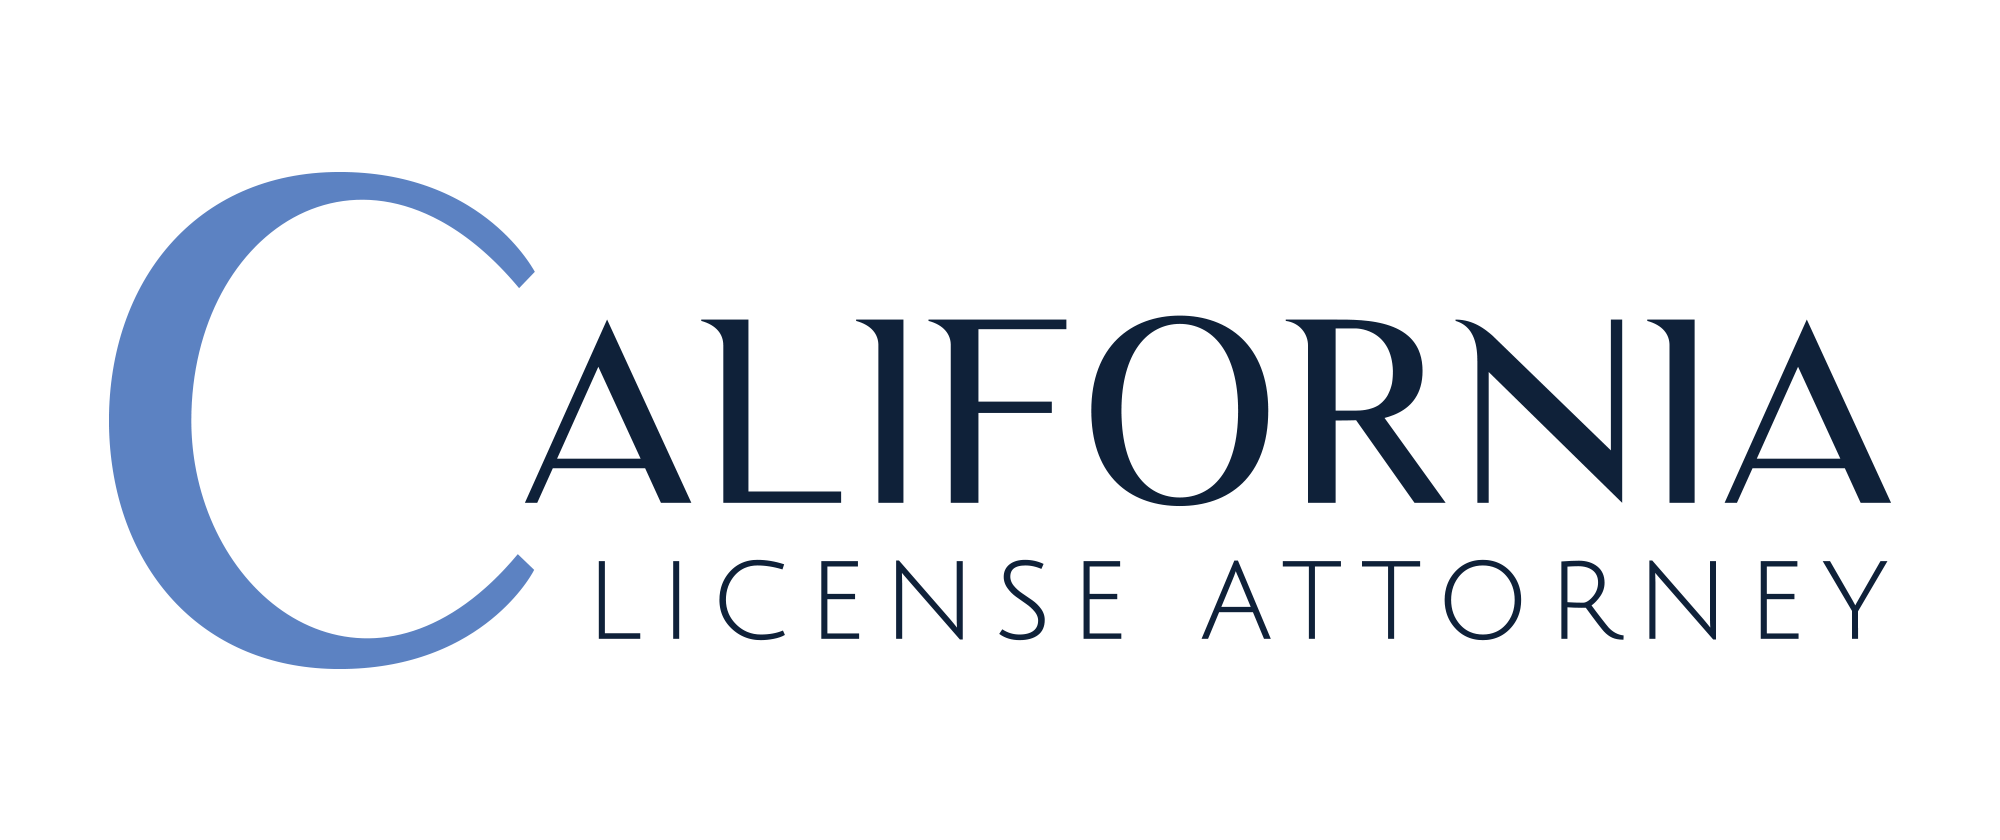 California Chiropractic Board Defense Attorney